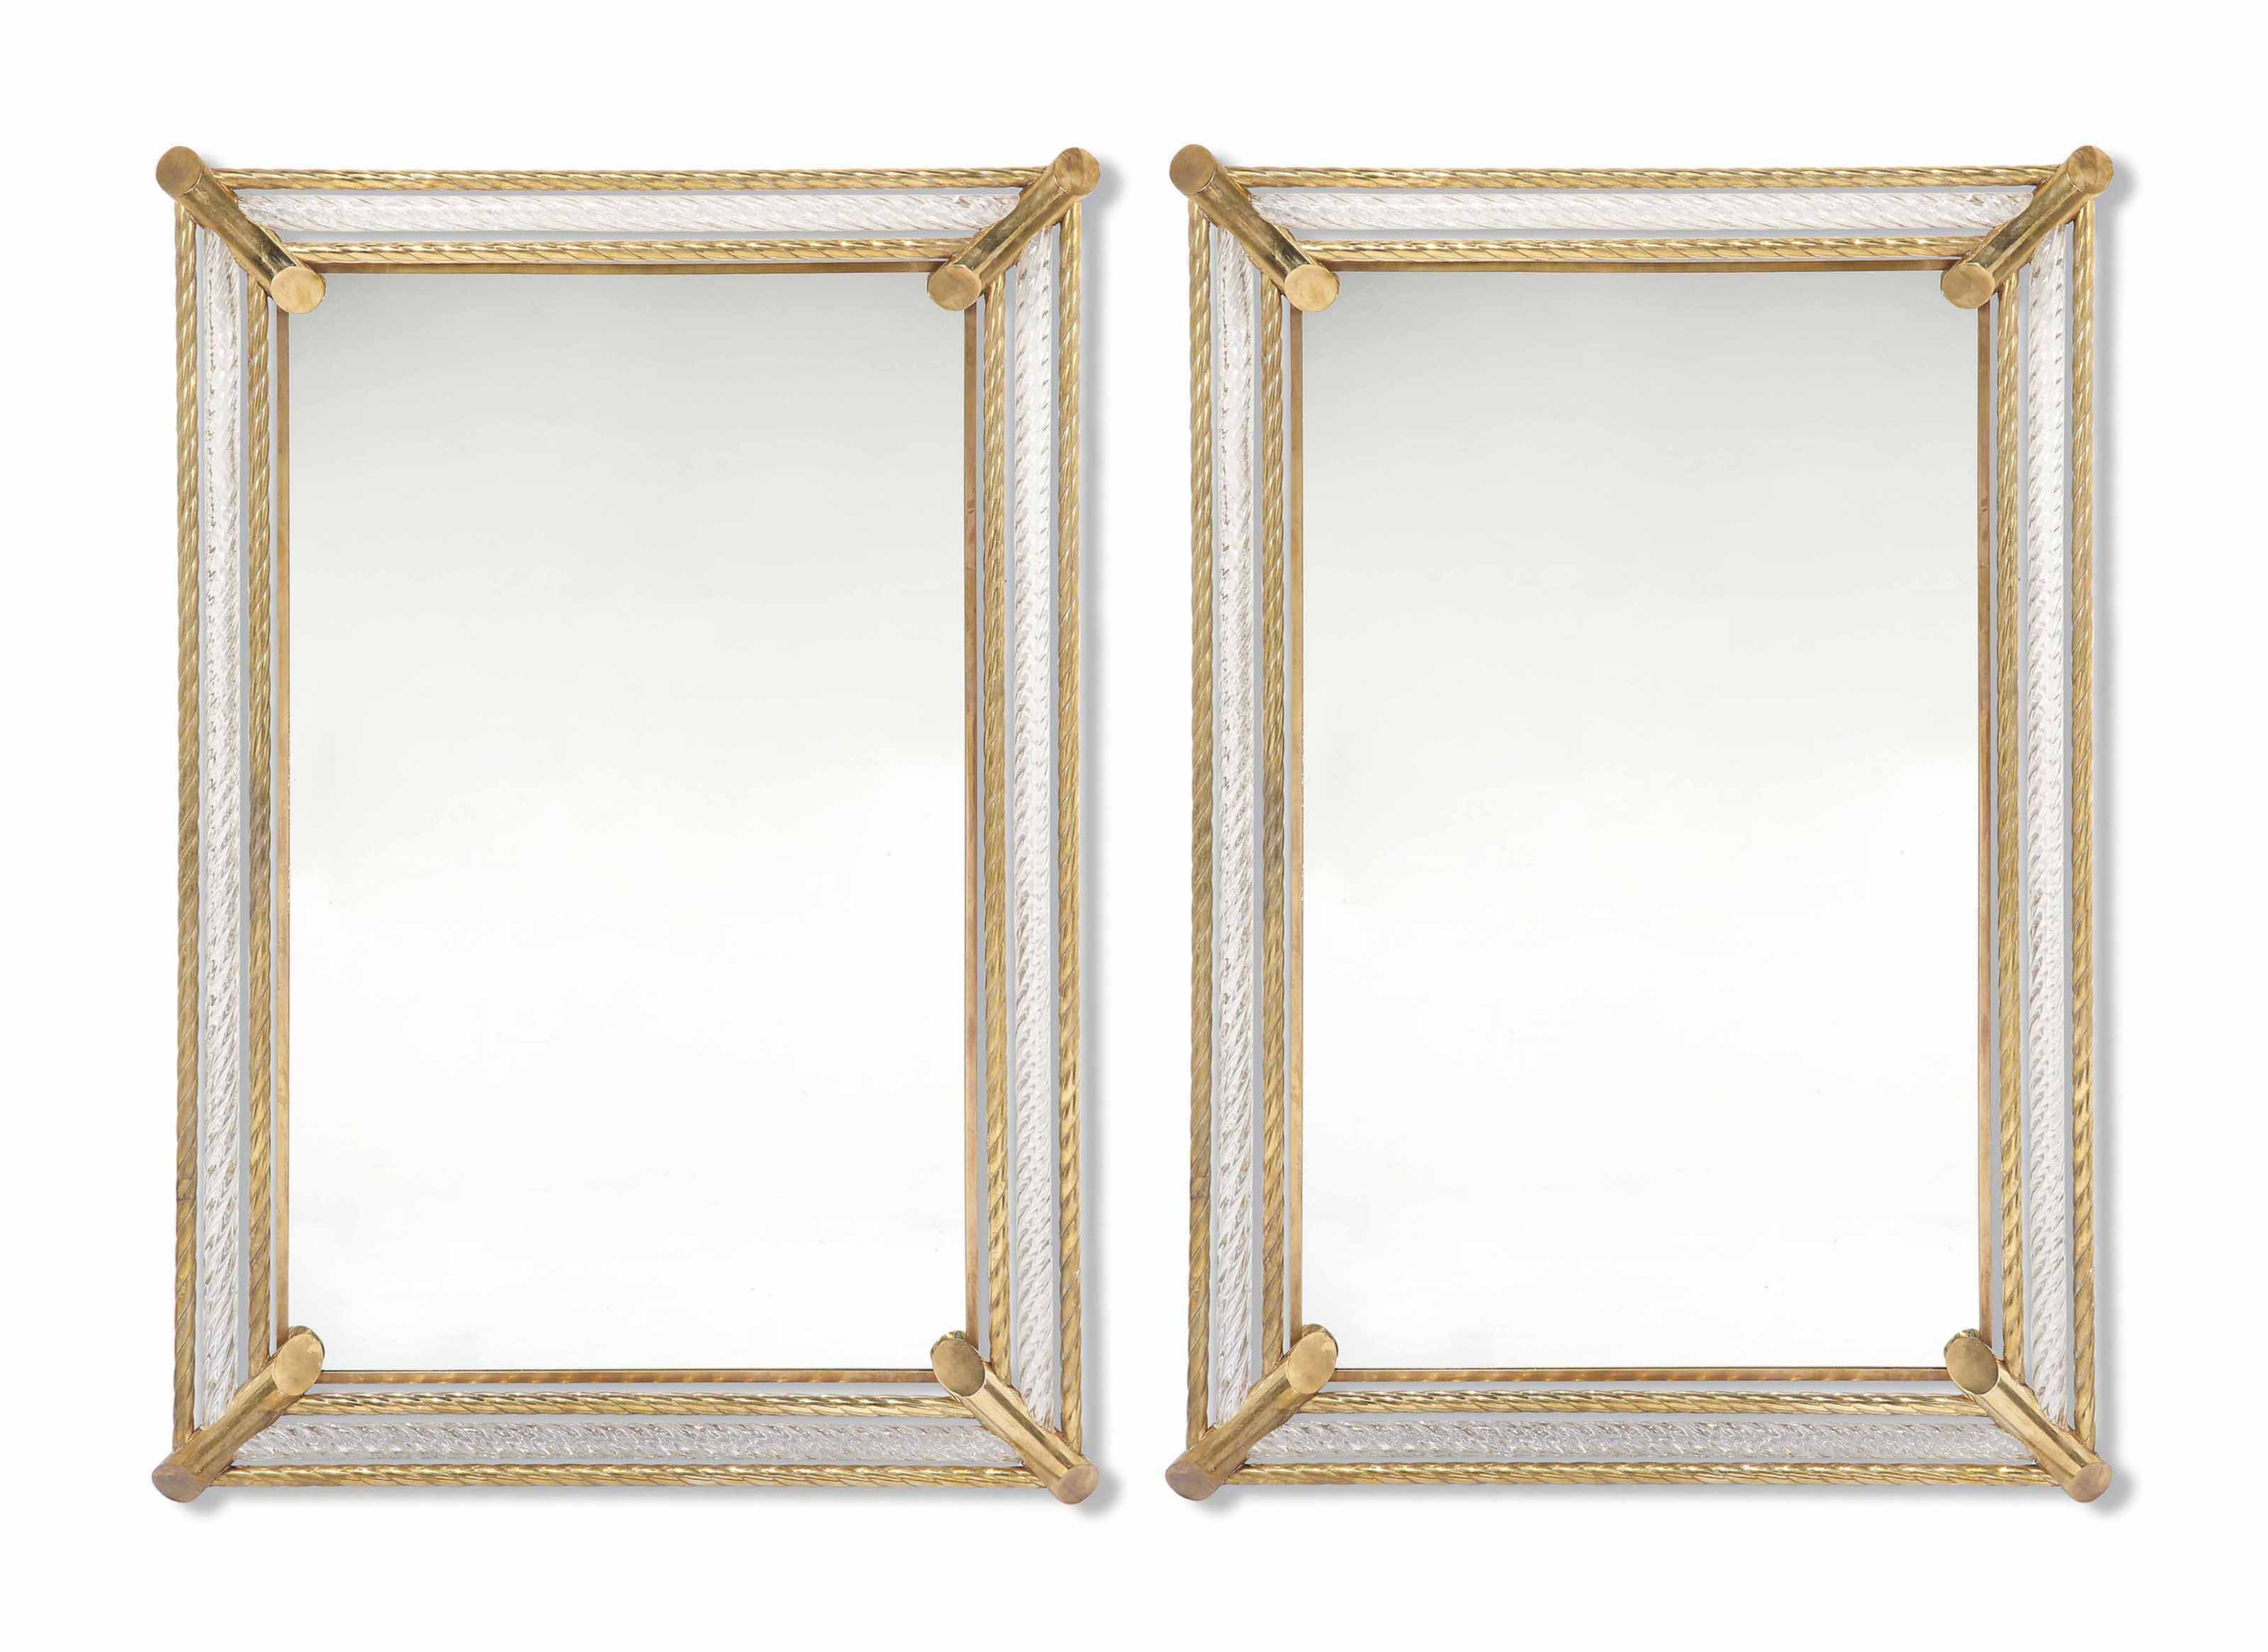 A PAIR OF BRASS AND GLASS MIRR